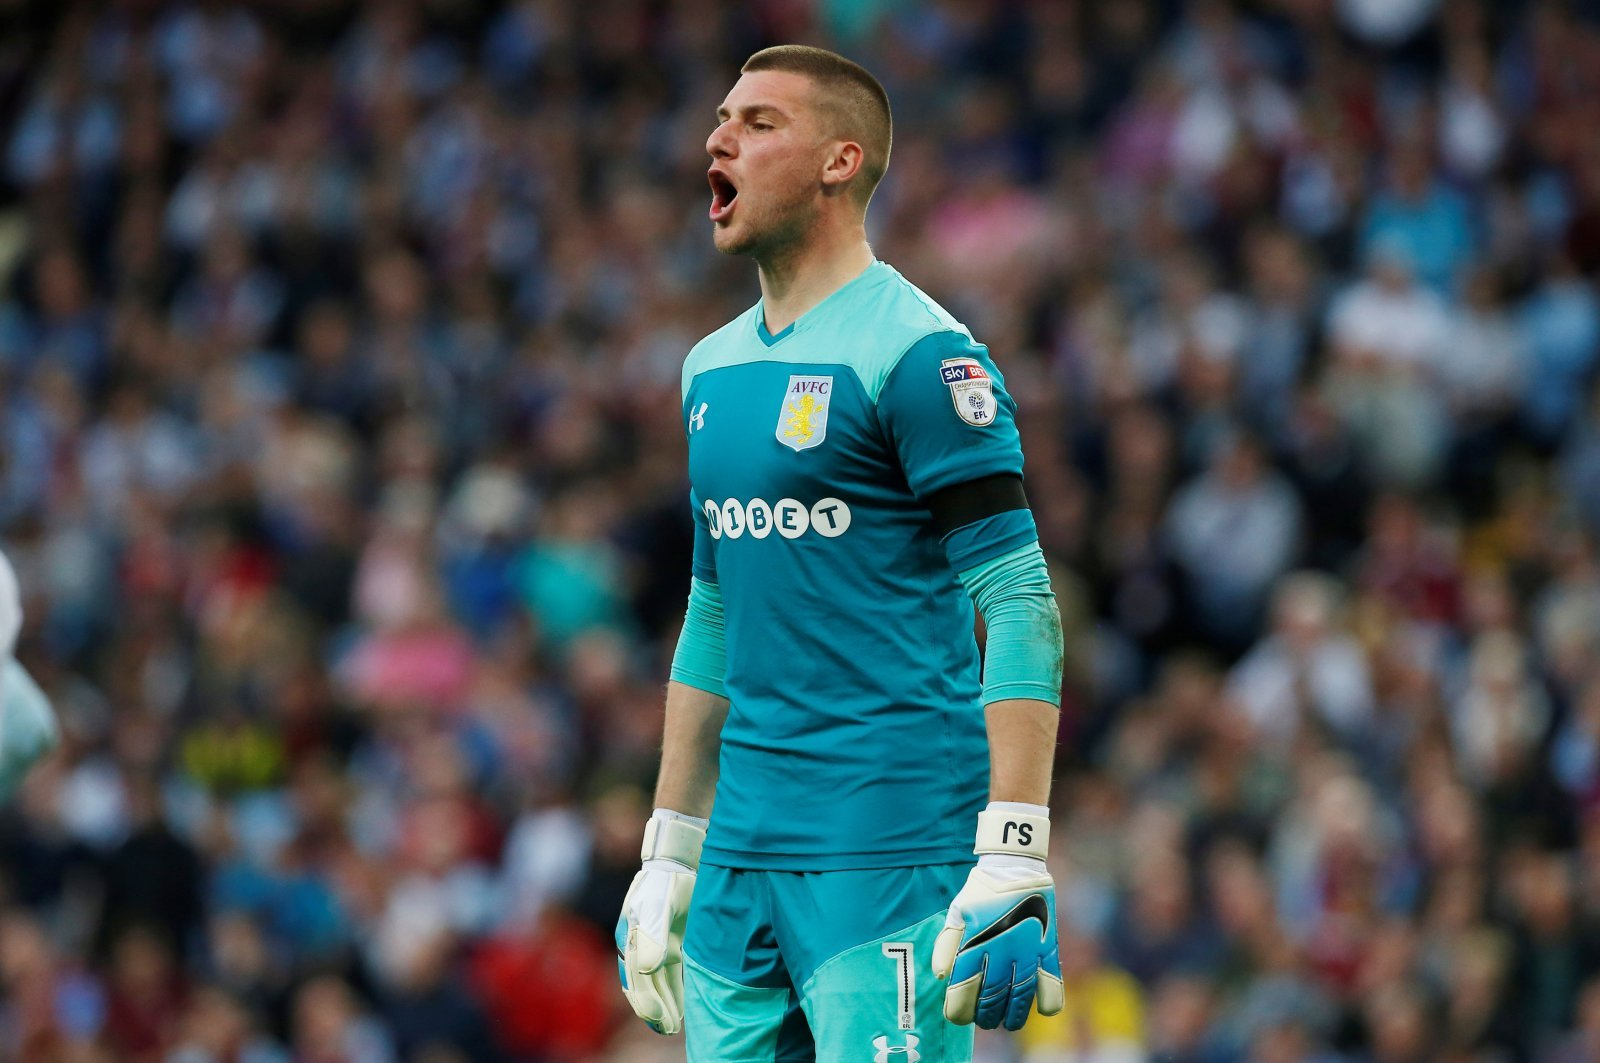 West Brom fans on Twitter were indebted to Sam Johnstone for Swansea win